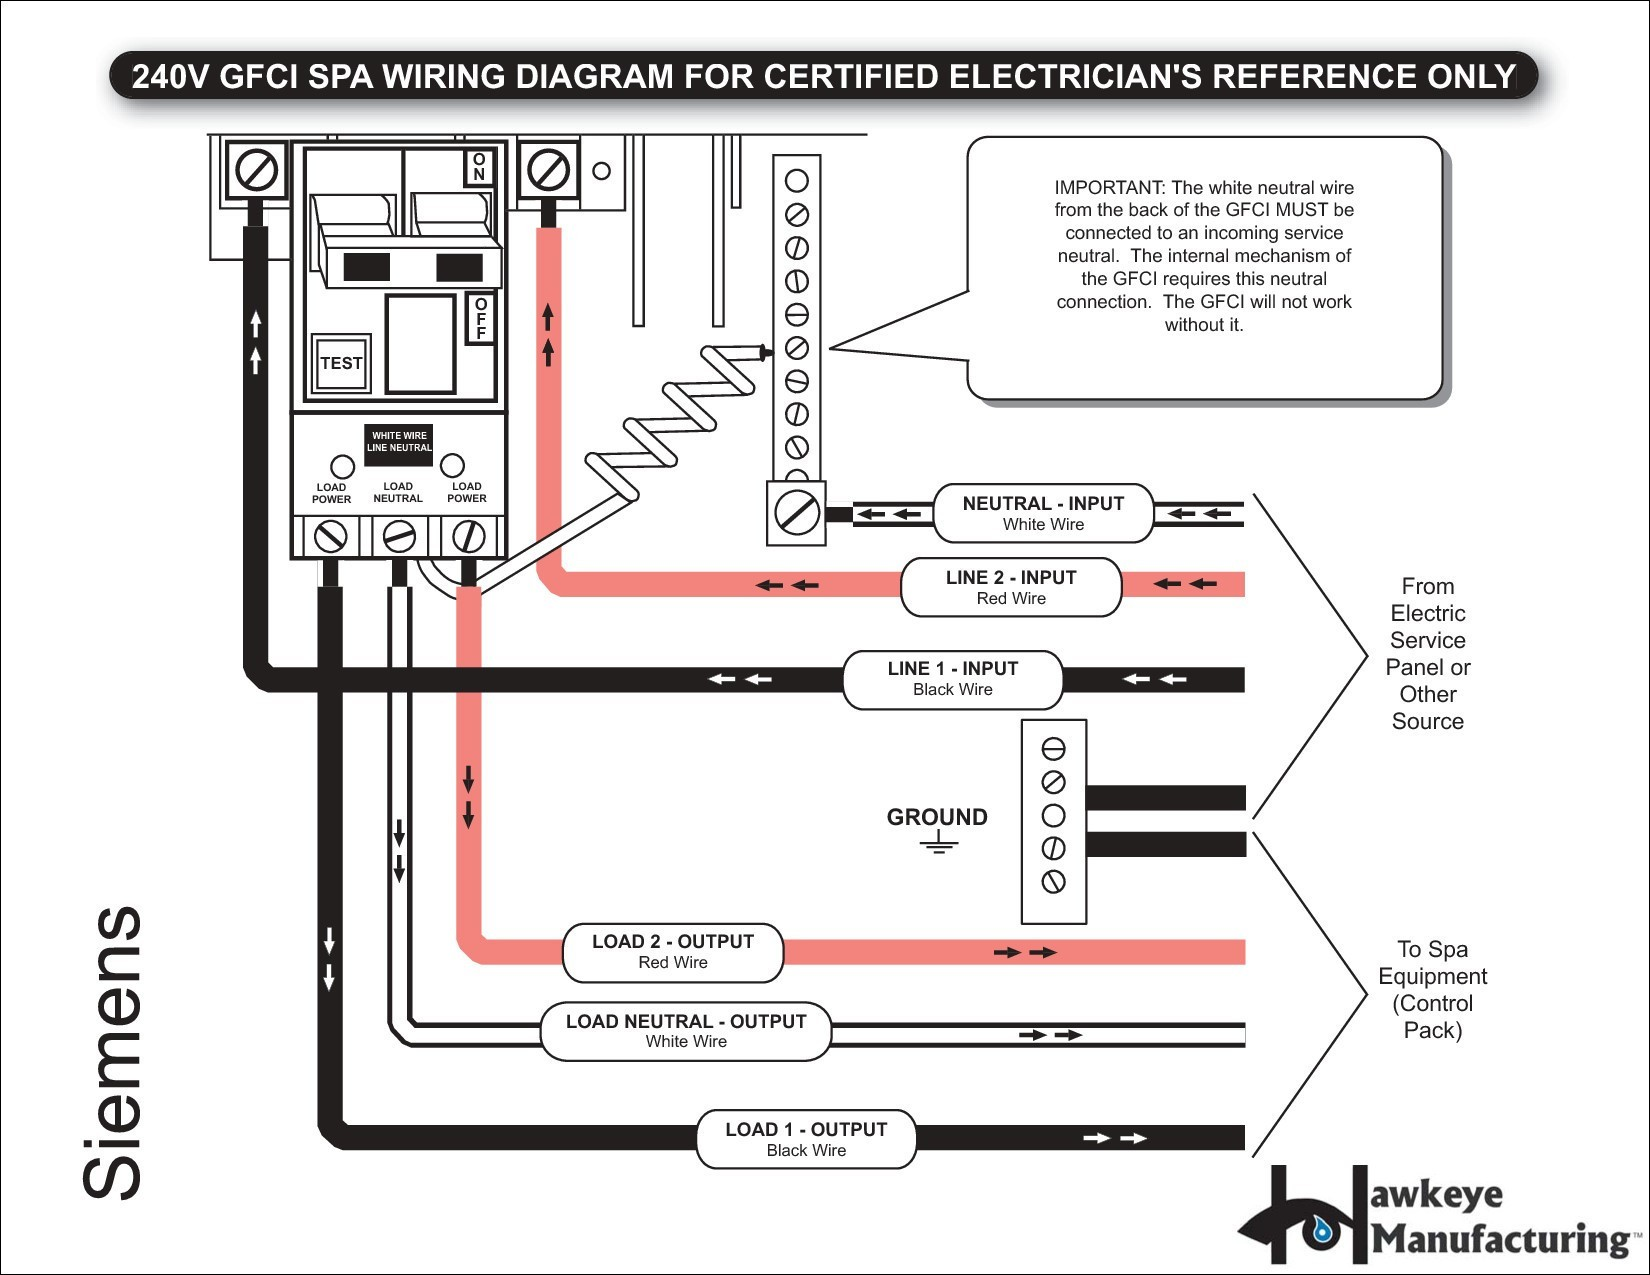 220v Gfci Wiring Diagram - Wiring Diagram For Aveo -  plymouth.nescafe.jeanjaures37.frWiring Diagram Resource